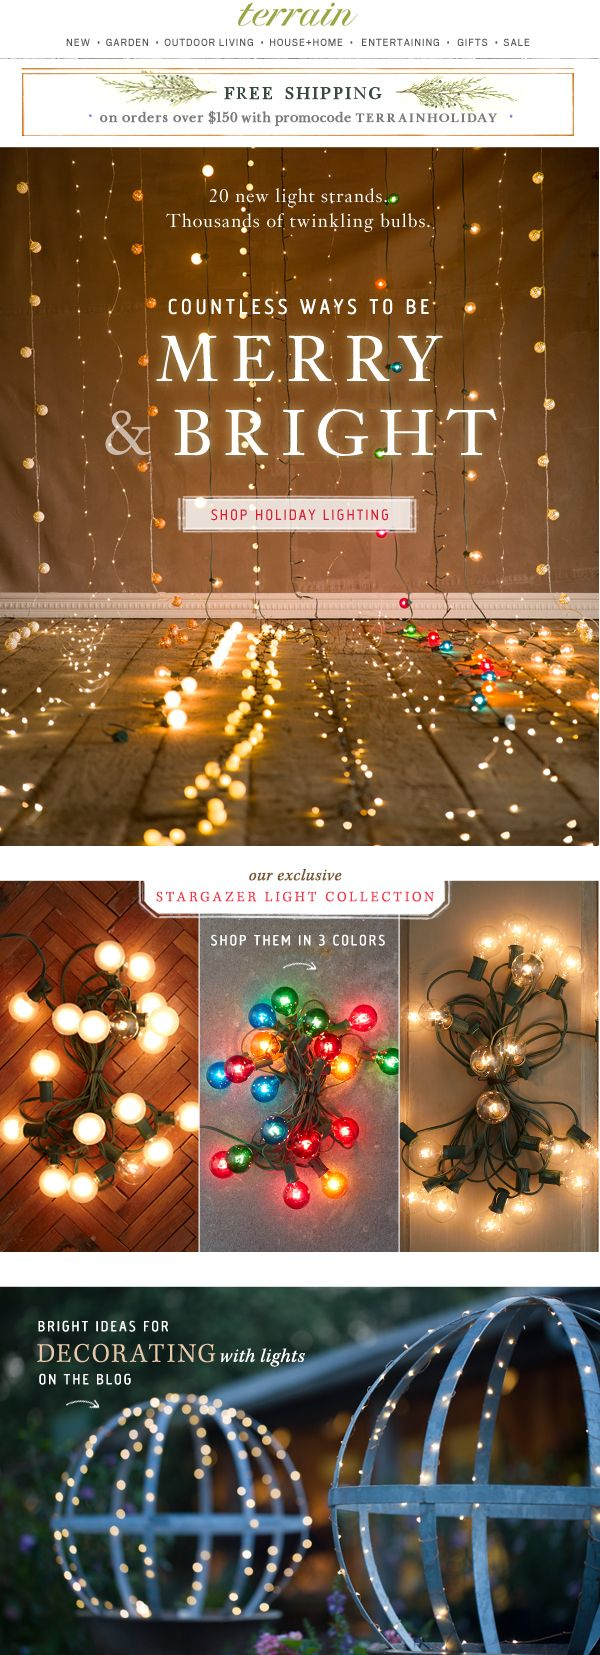 17 Best ideas about Holiday Emails on Pinterest | Marketing ideas ...